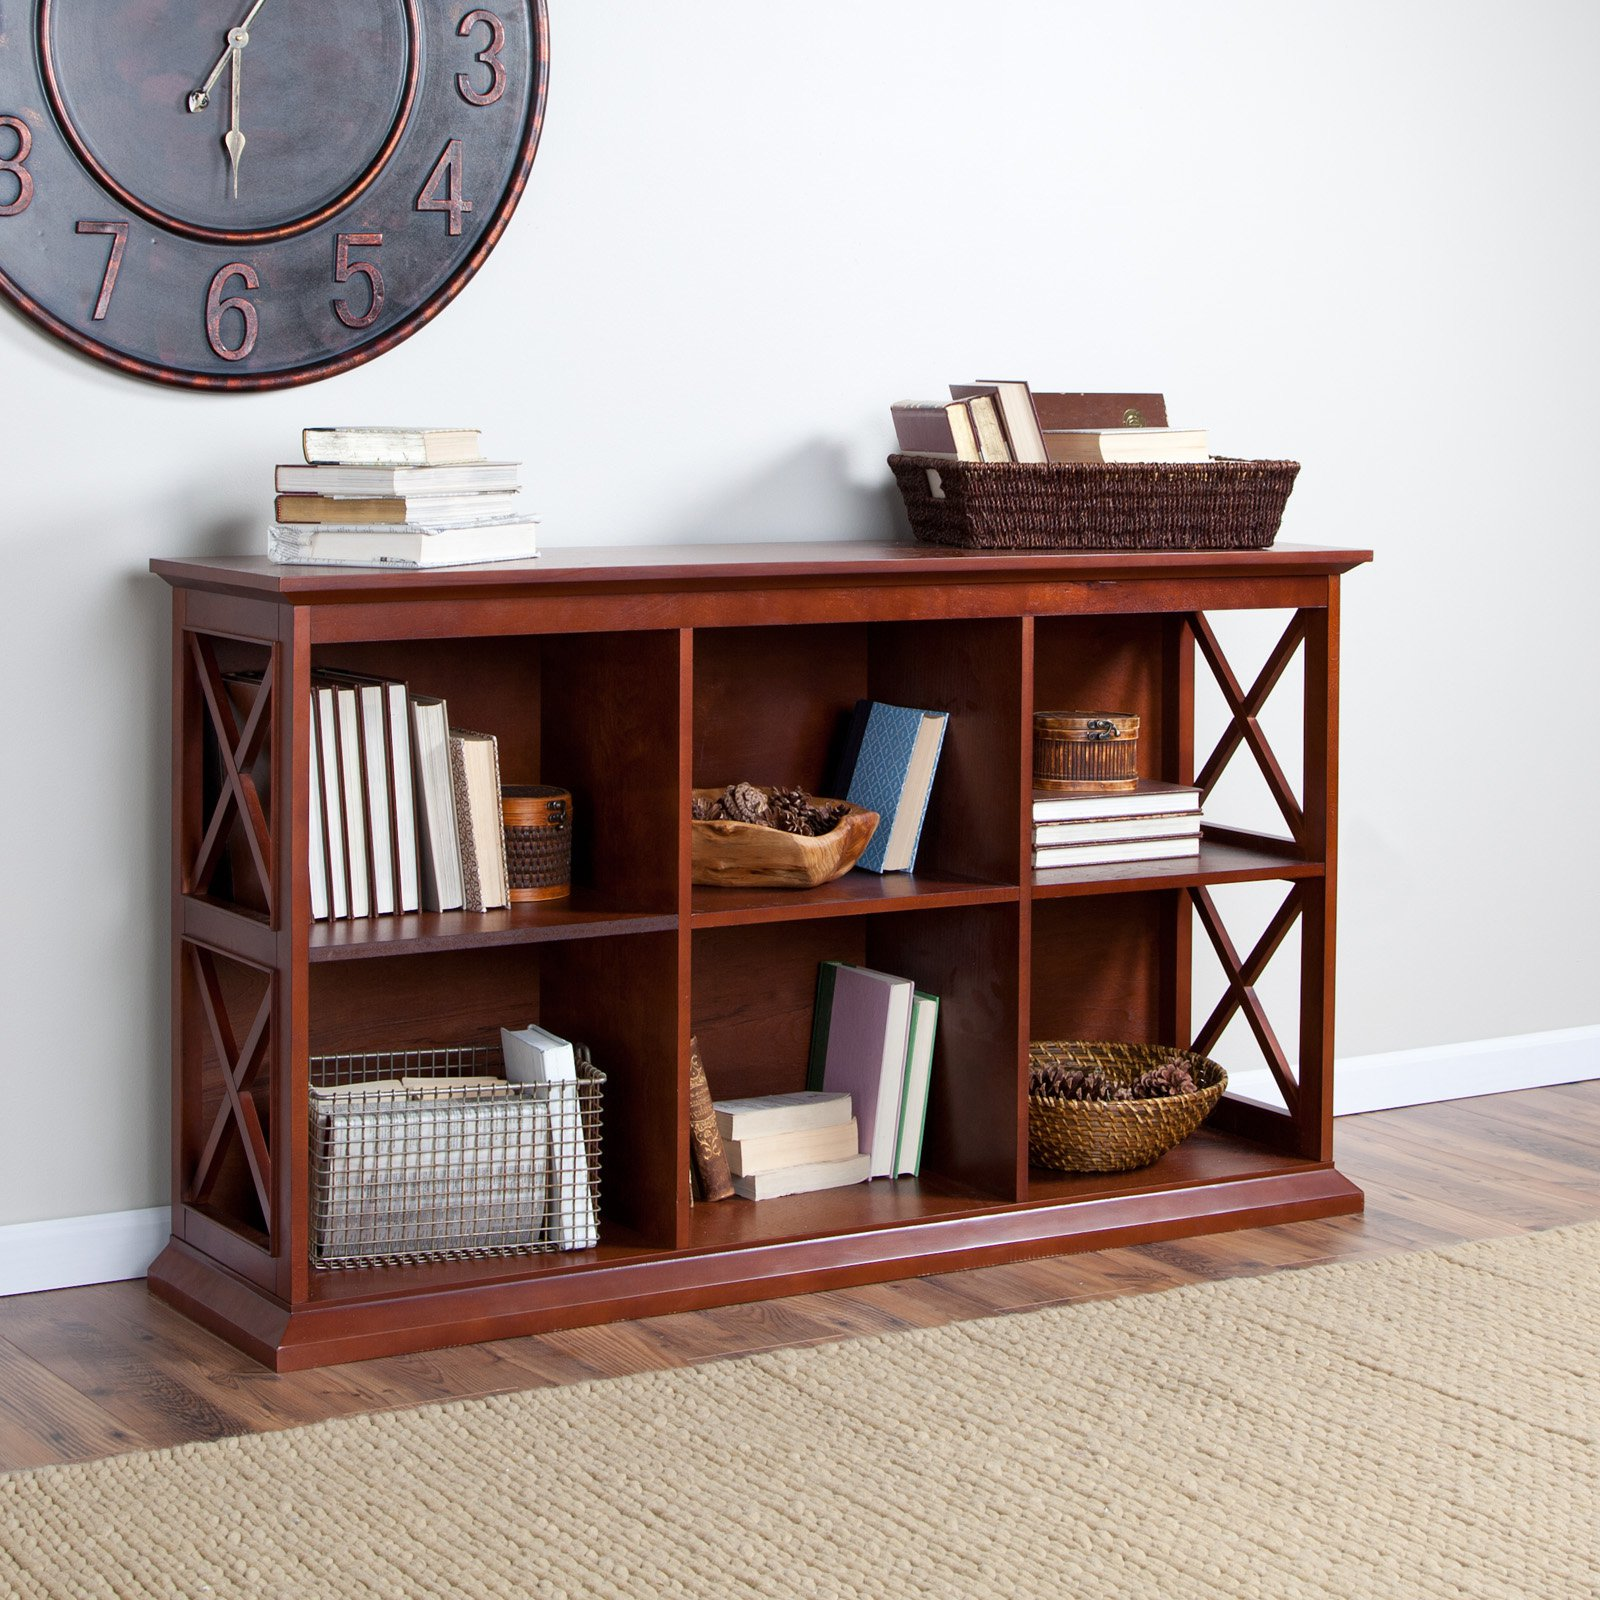 to espresso nash tvs tv up com home ameriwood for bookcase stand ip with walmart bookcases